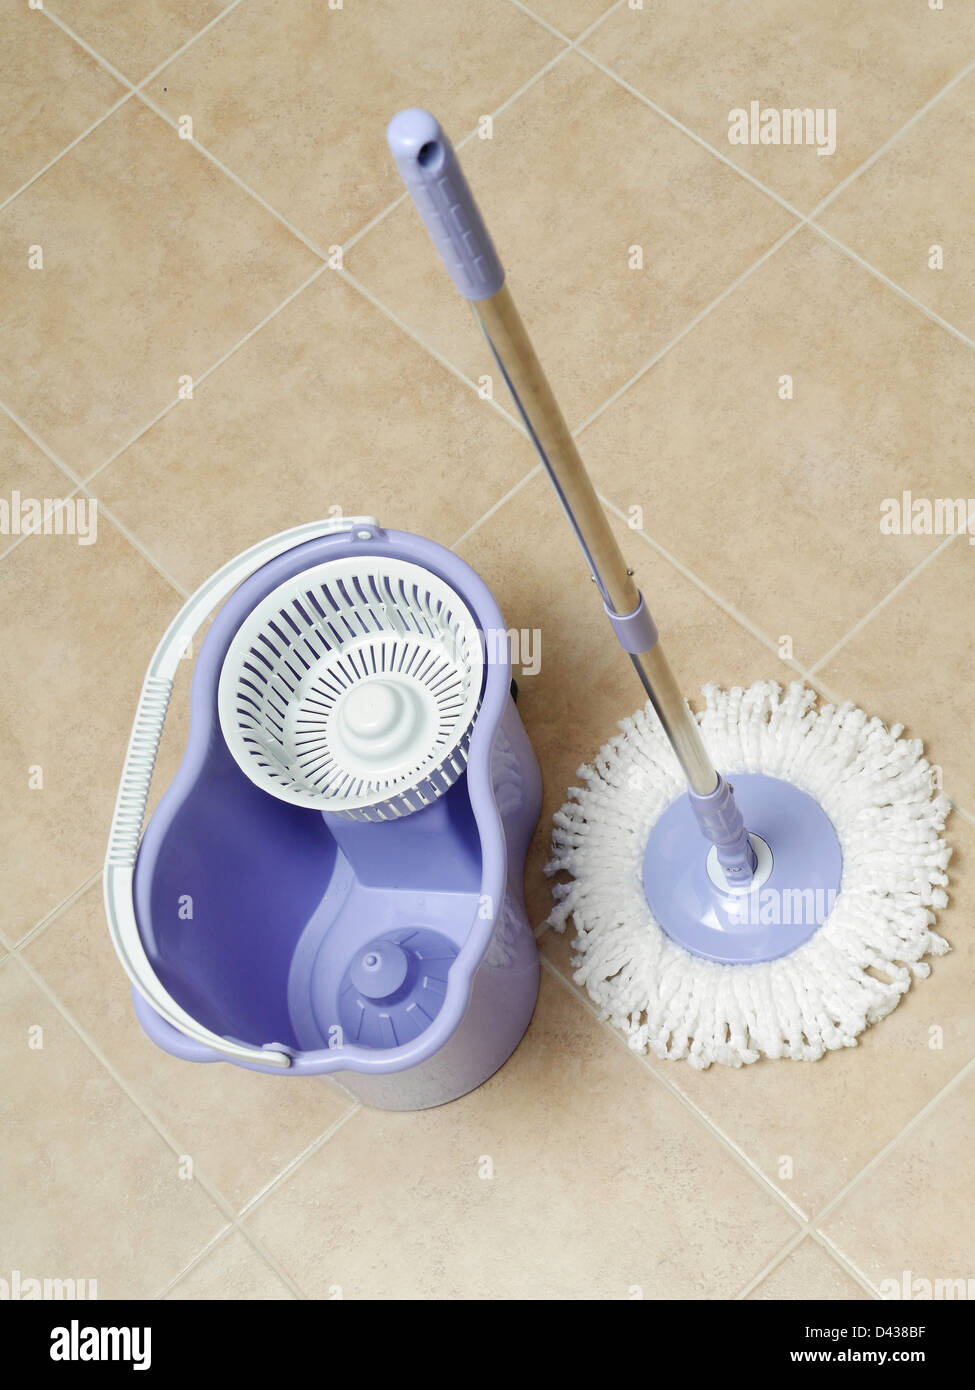 Rotary mop and empty bucket on tile floor - Stock Image